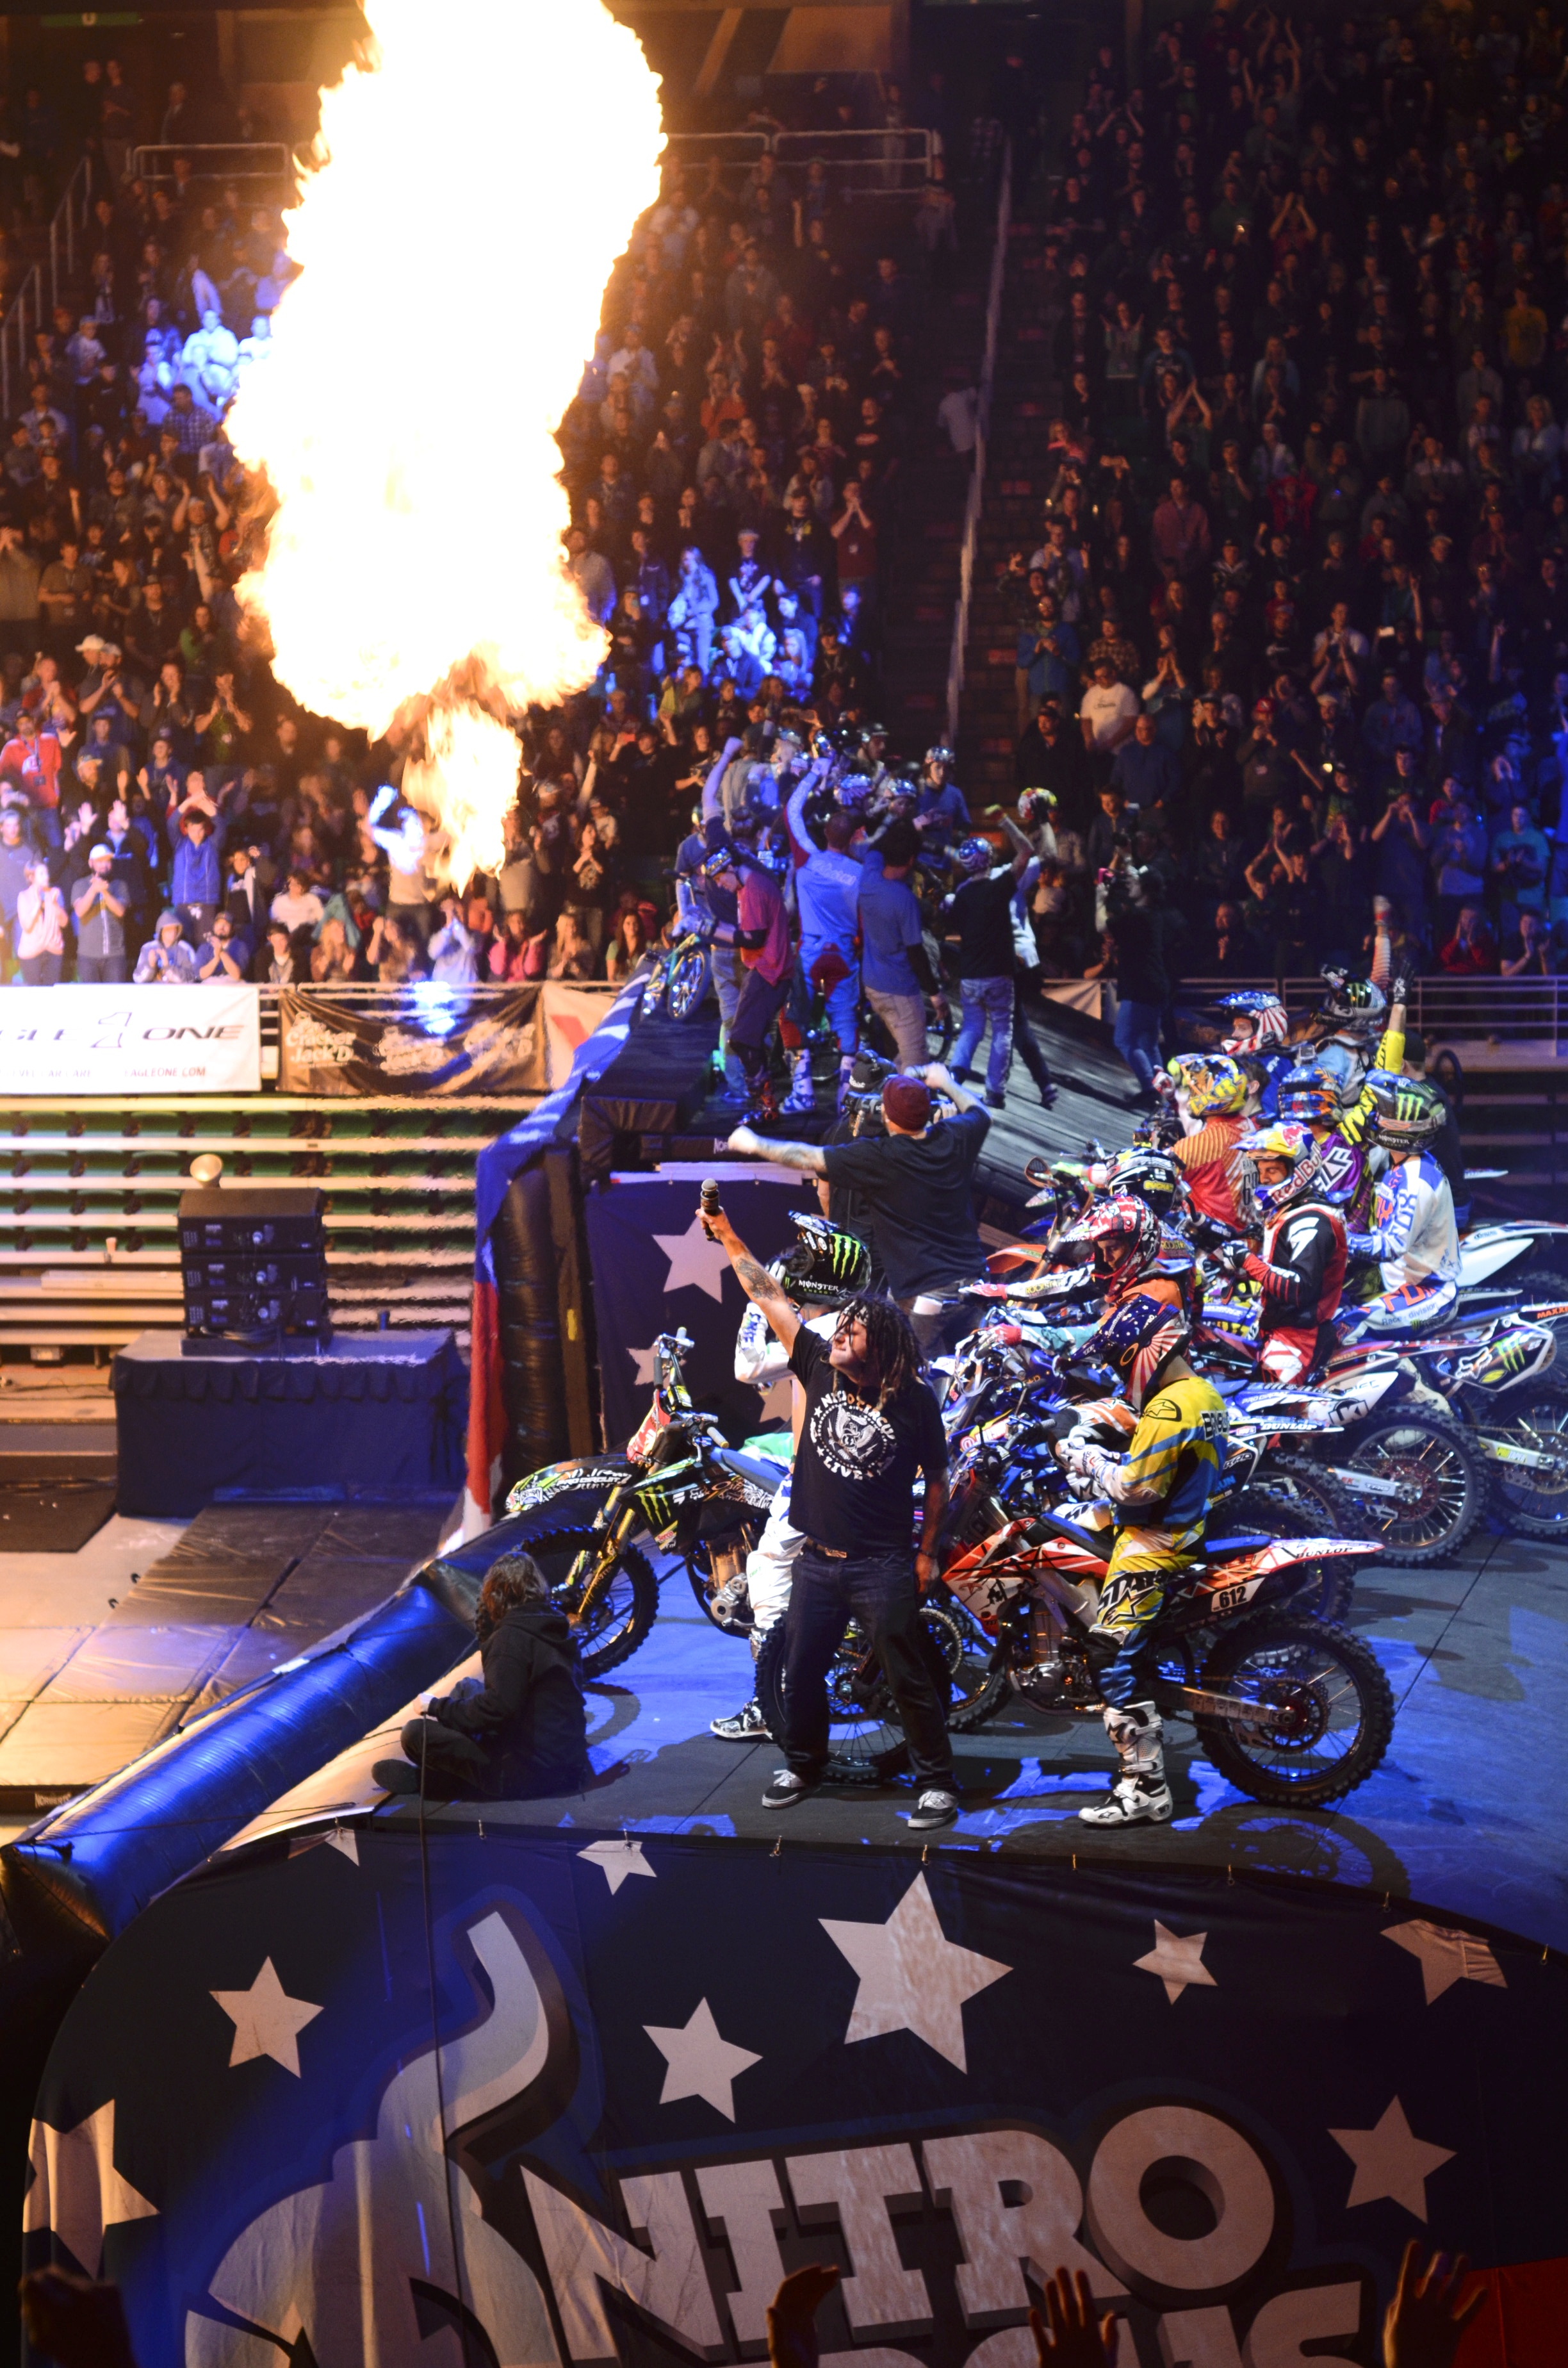 nitro circus returns home to salt lake city t squared action sports. Black Bedroom Furniture Sets. Home Design Ideas